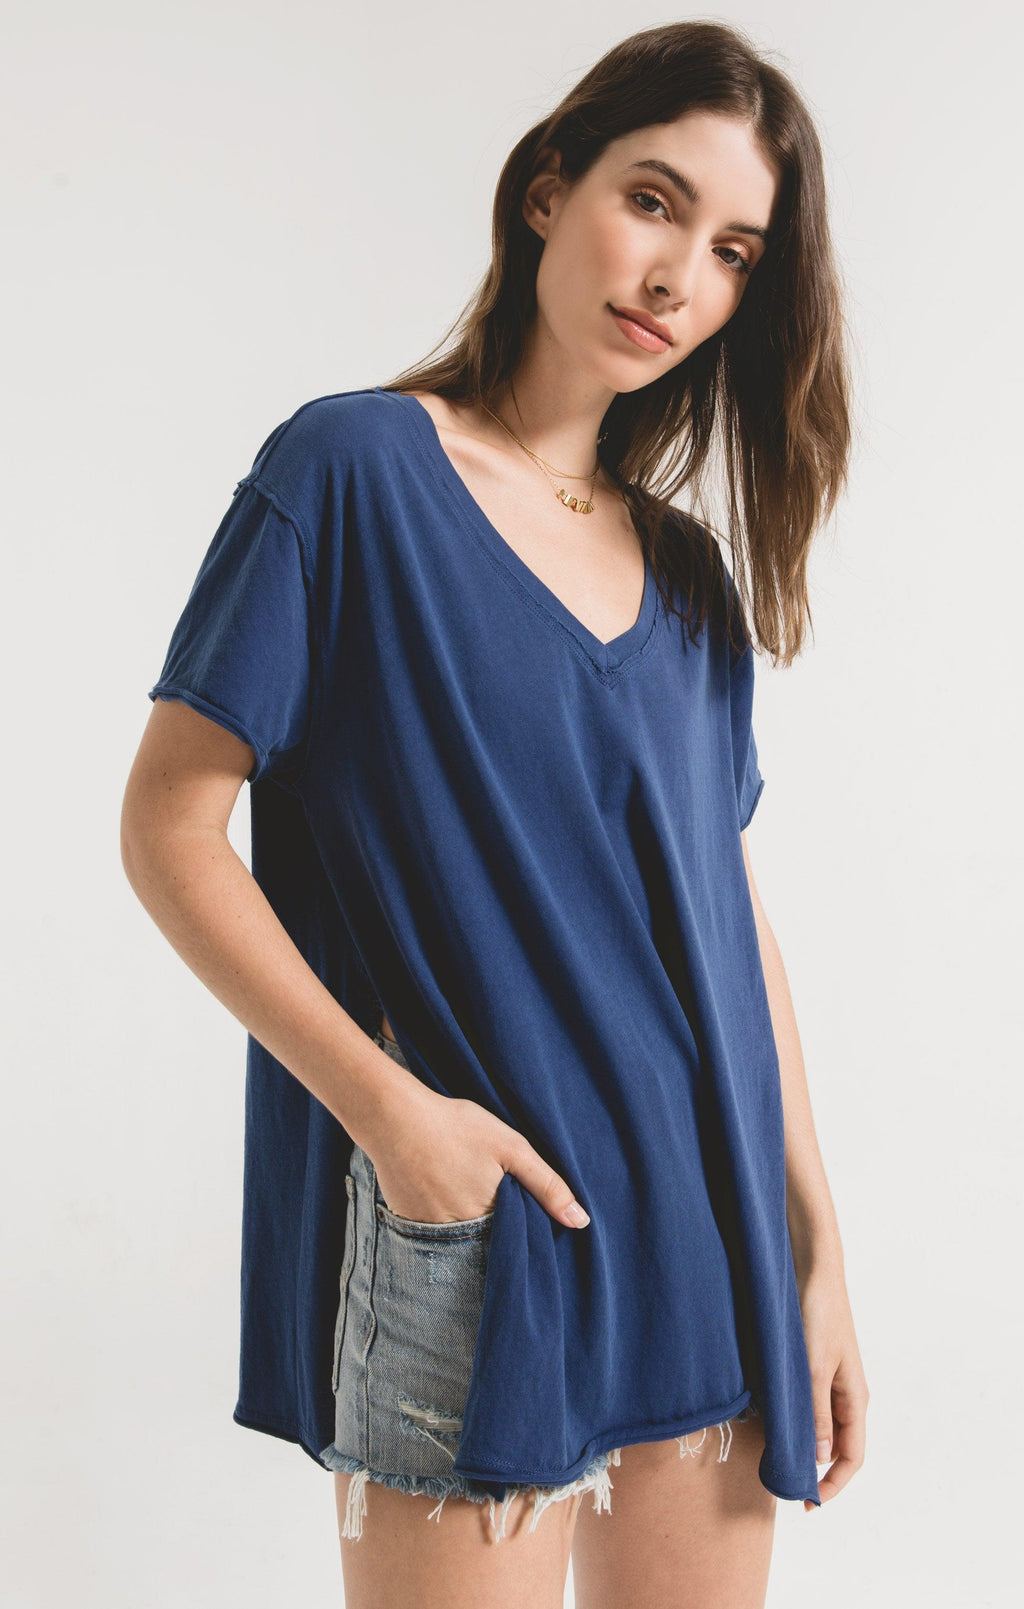 Z SUPPLY indigo blue organic cotton side slit tunic top